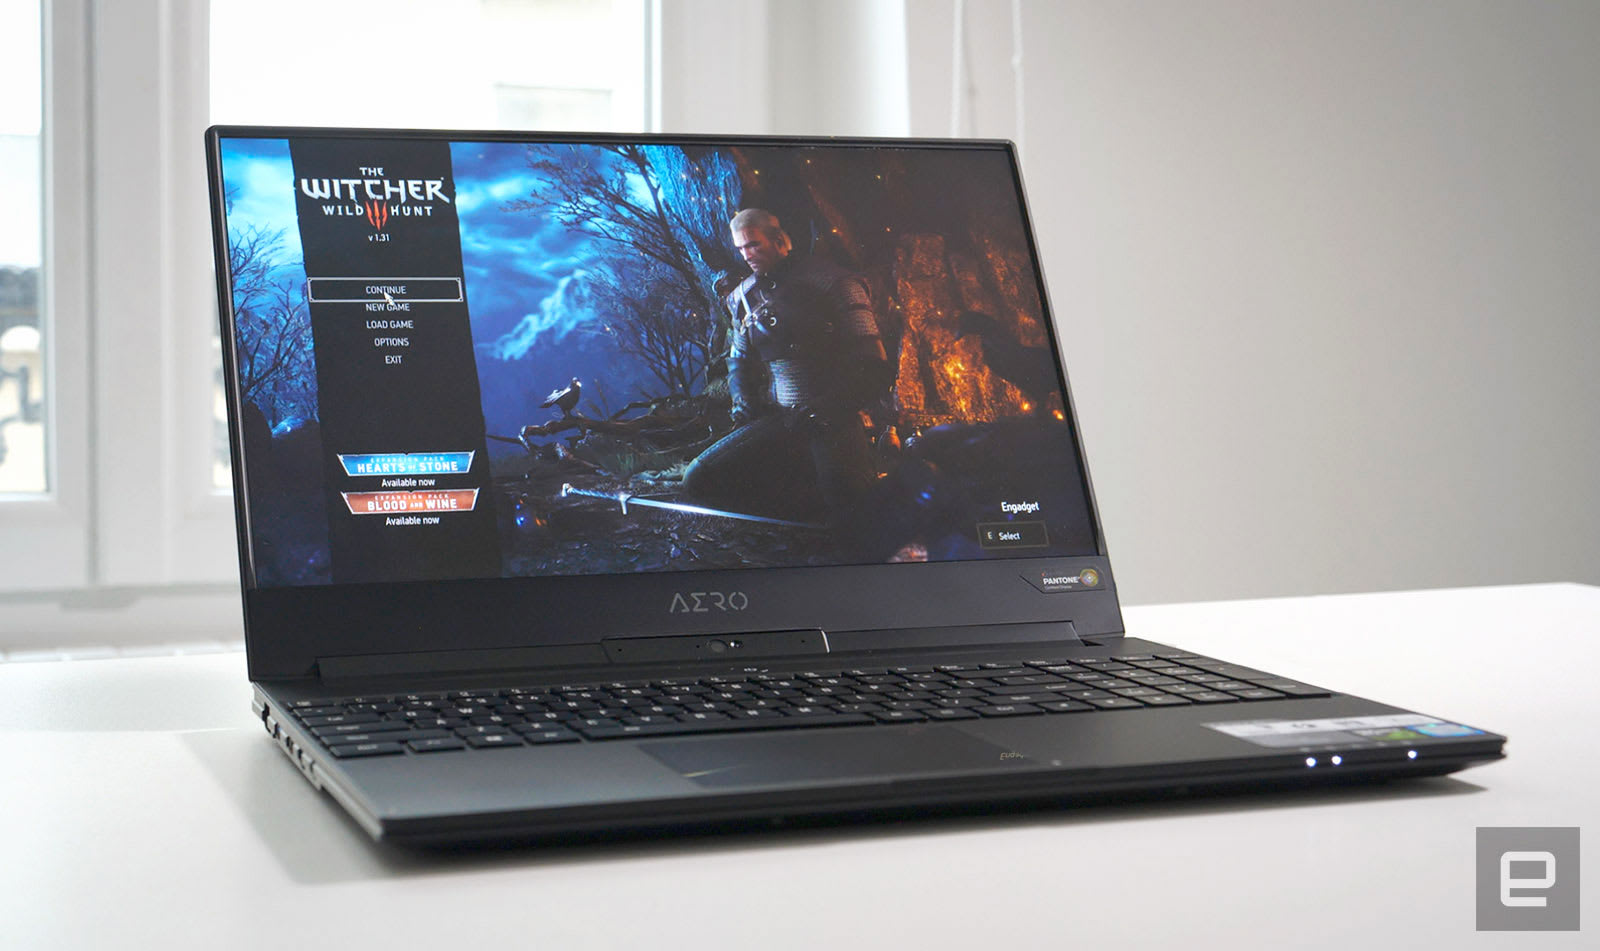 Best Gaming Laptop Under 1000 2020 The best lightweight gaming laptops